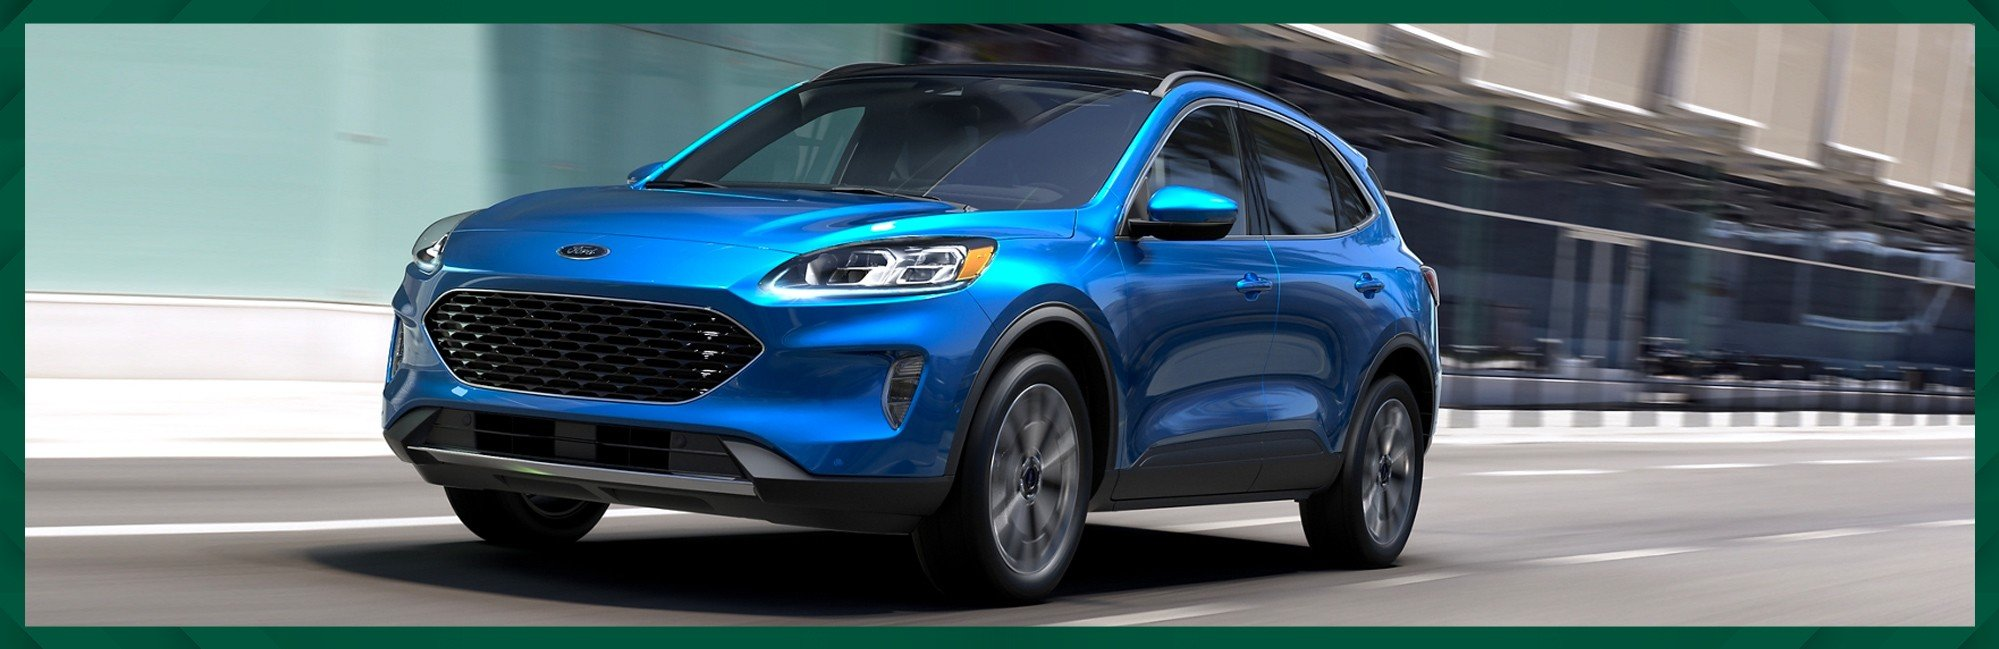 Ford Escape leasing